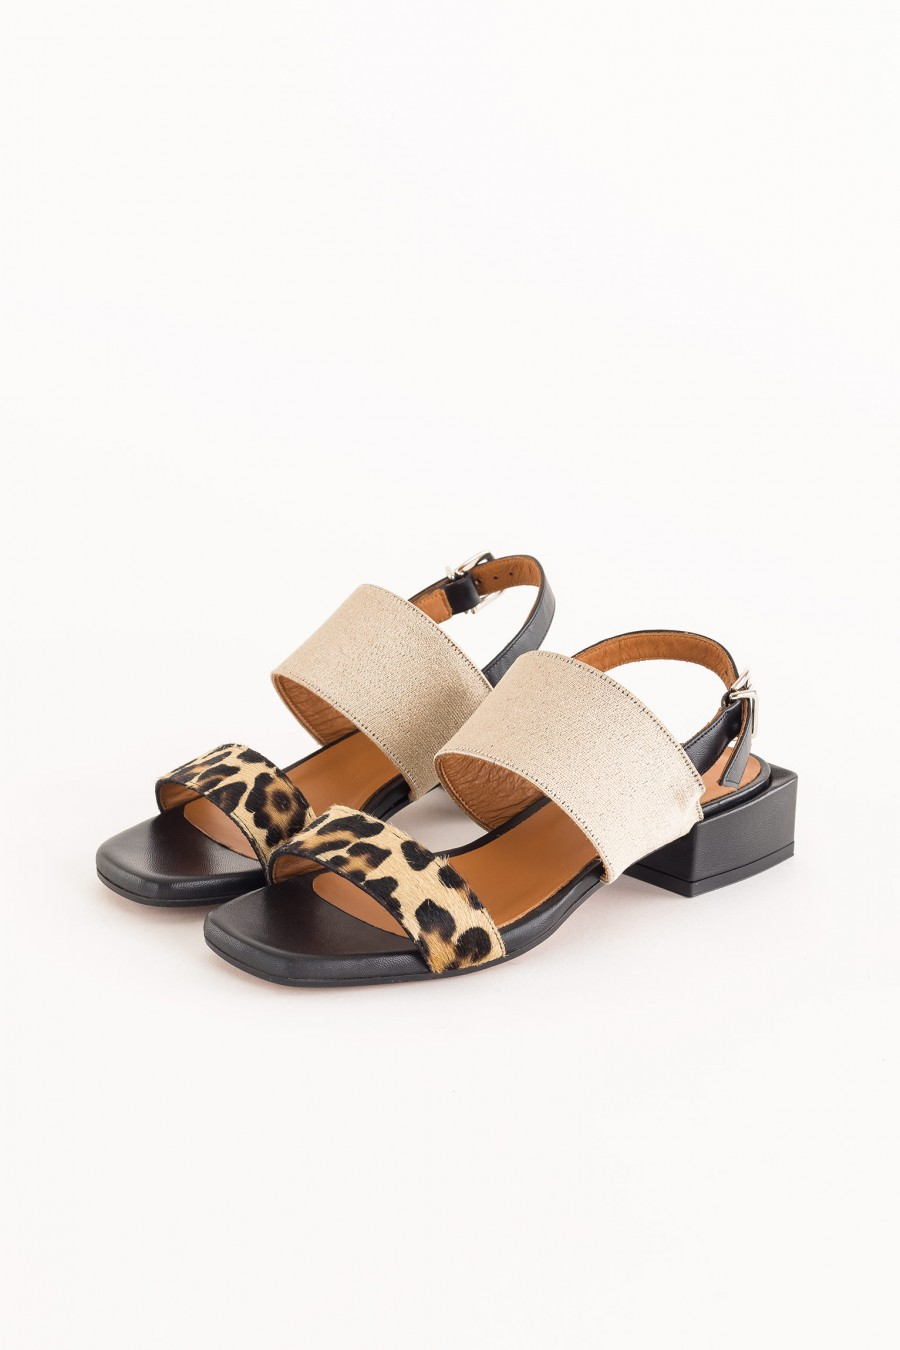 black sandals with square heel